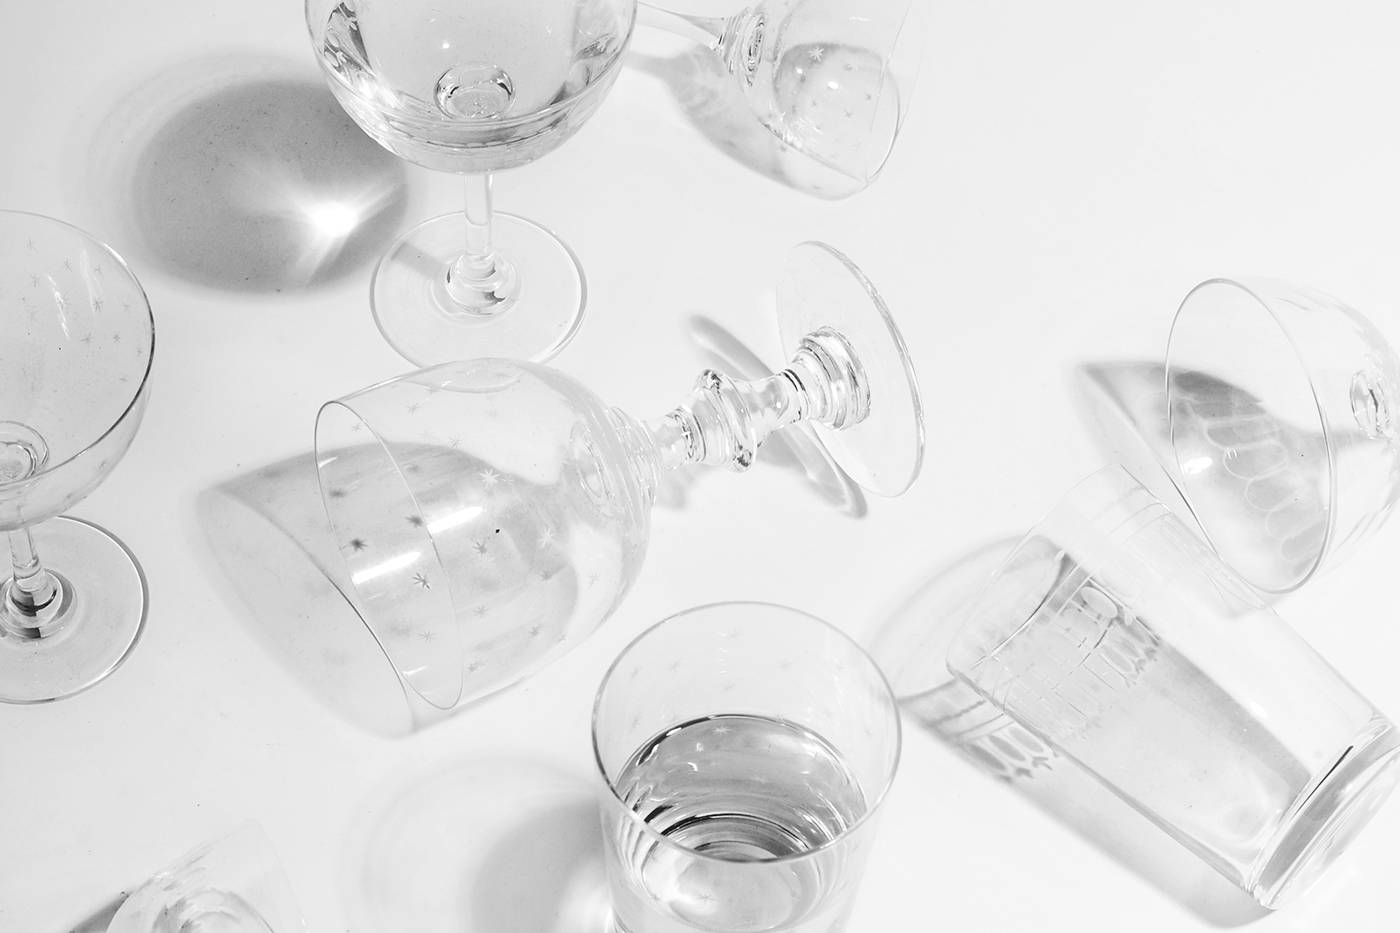 A mixed black and white image of The Vintage List glasses